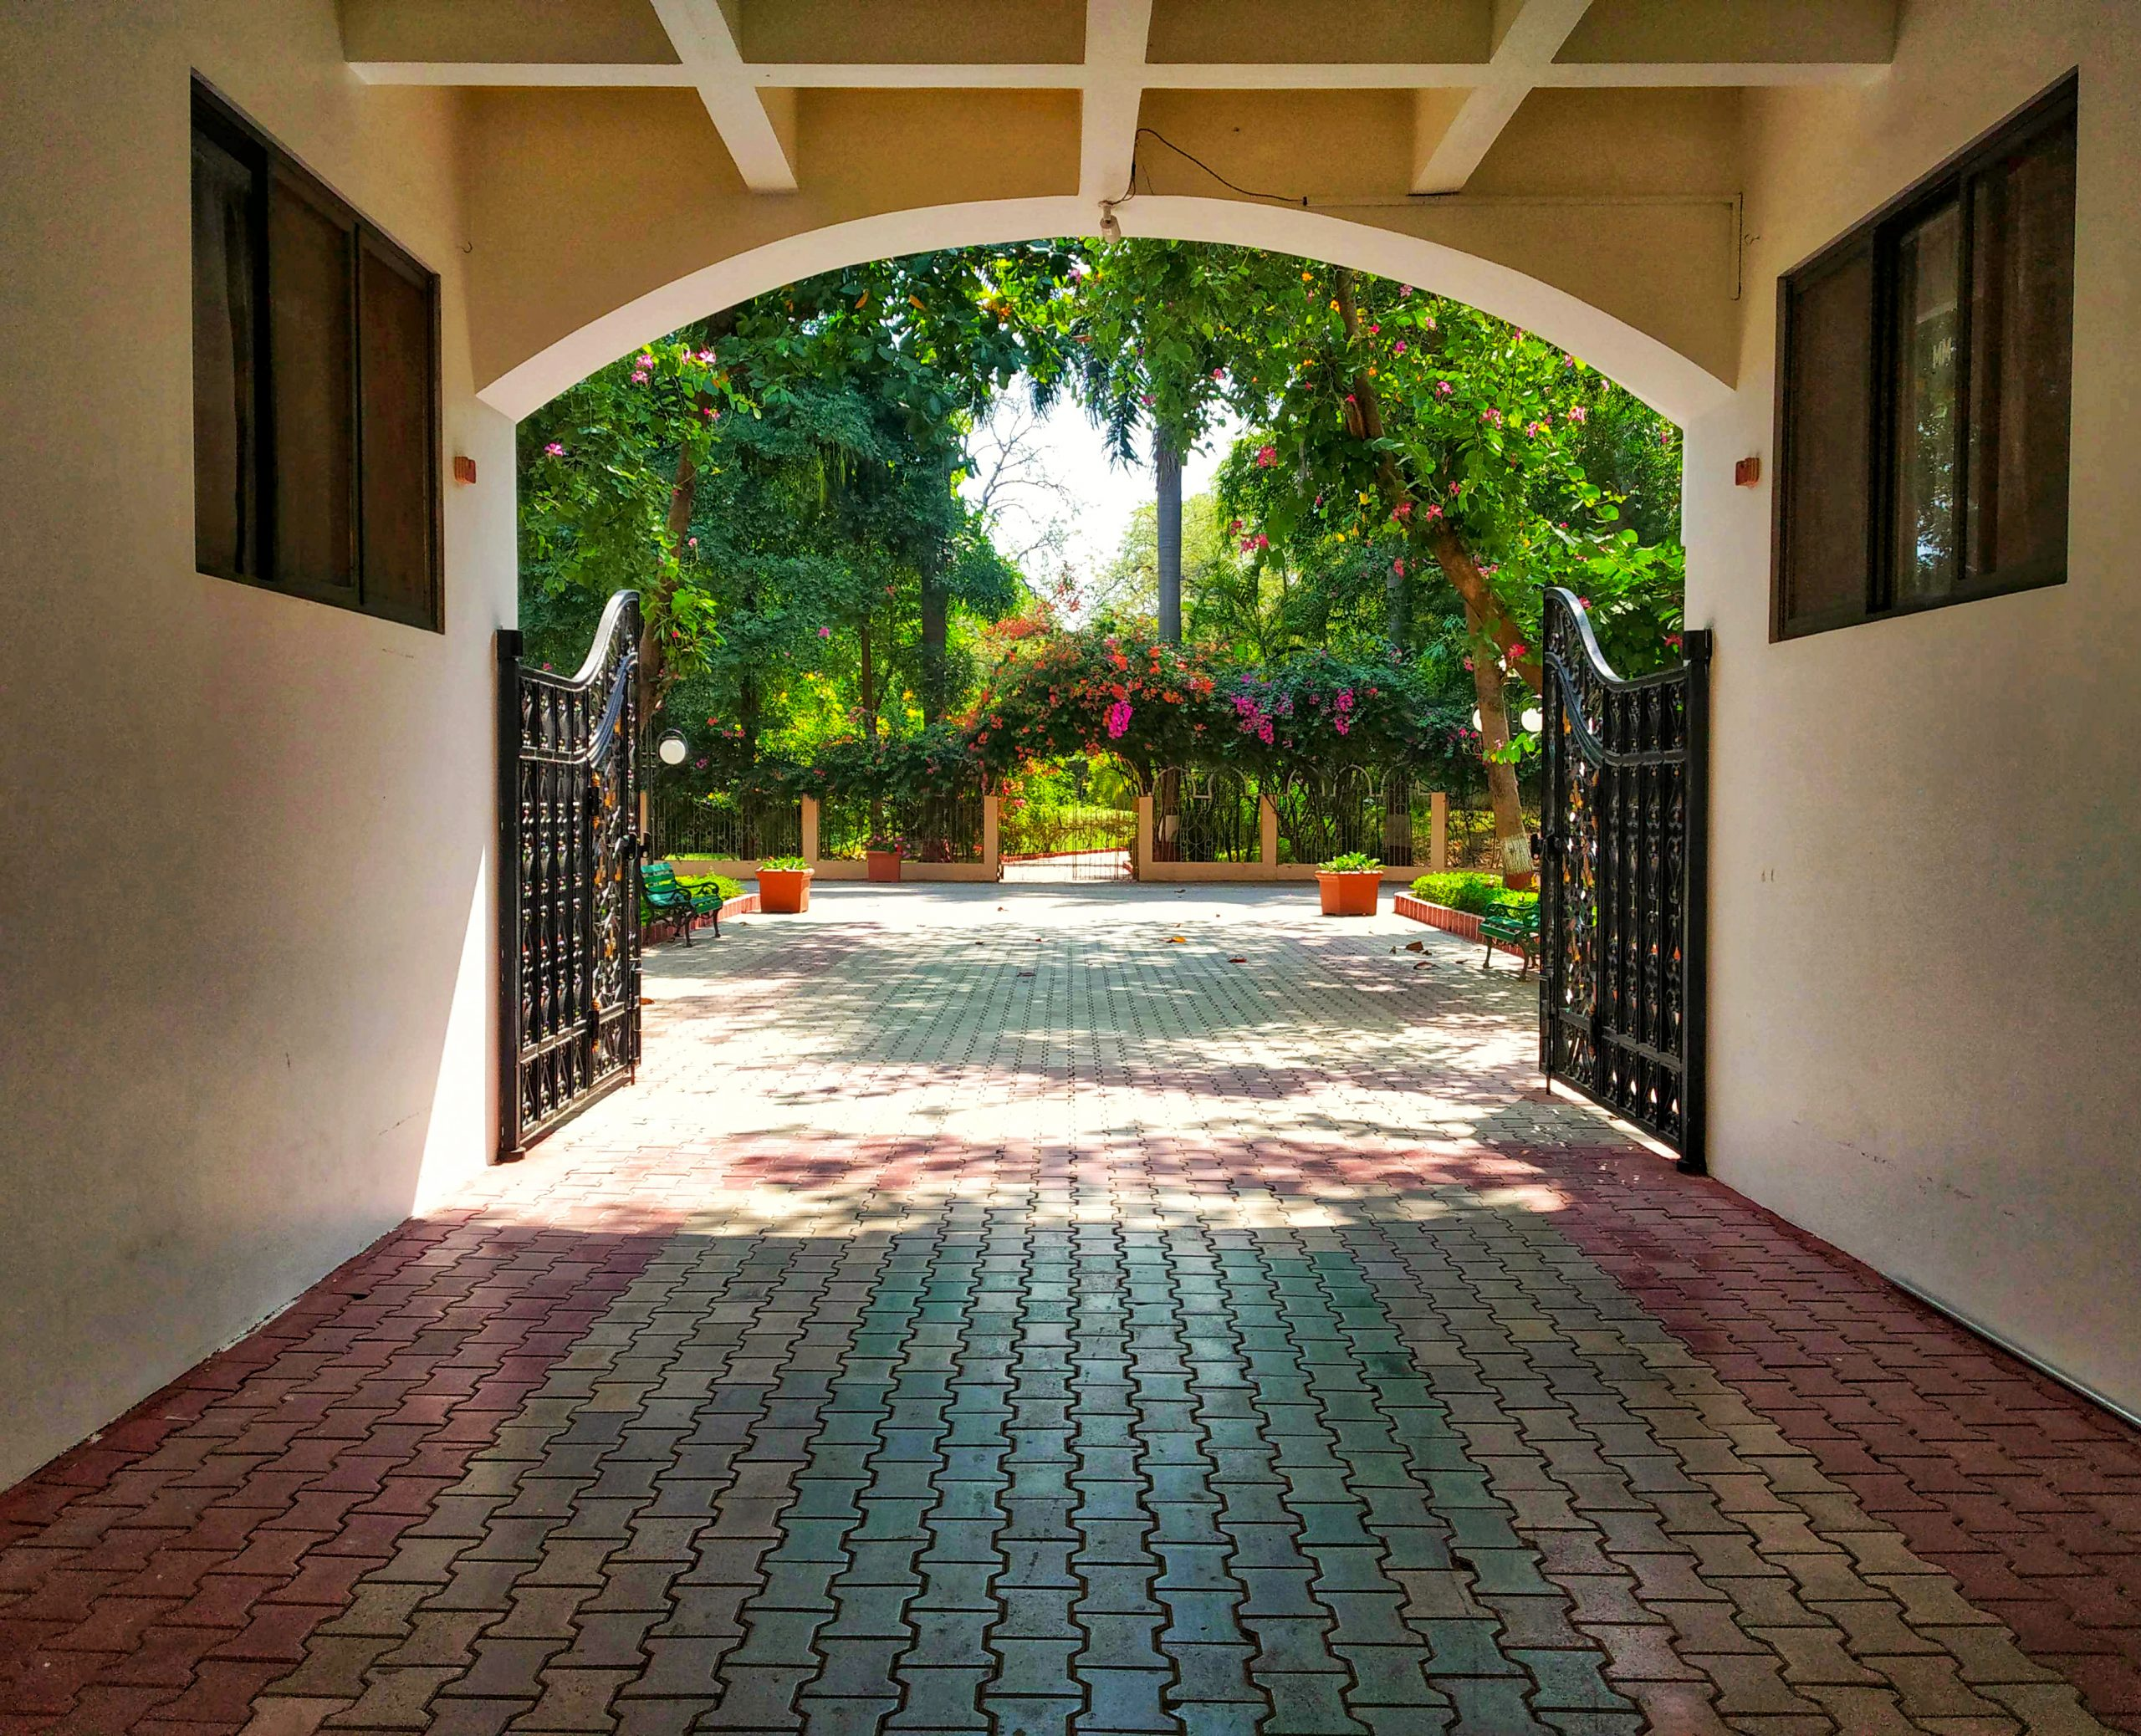 Entrance gate of a building